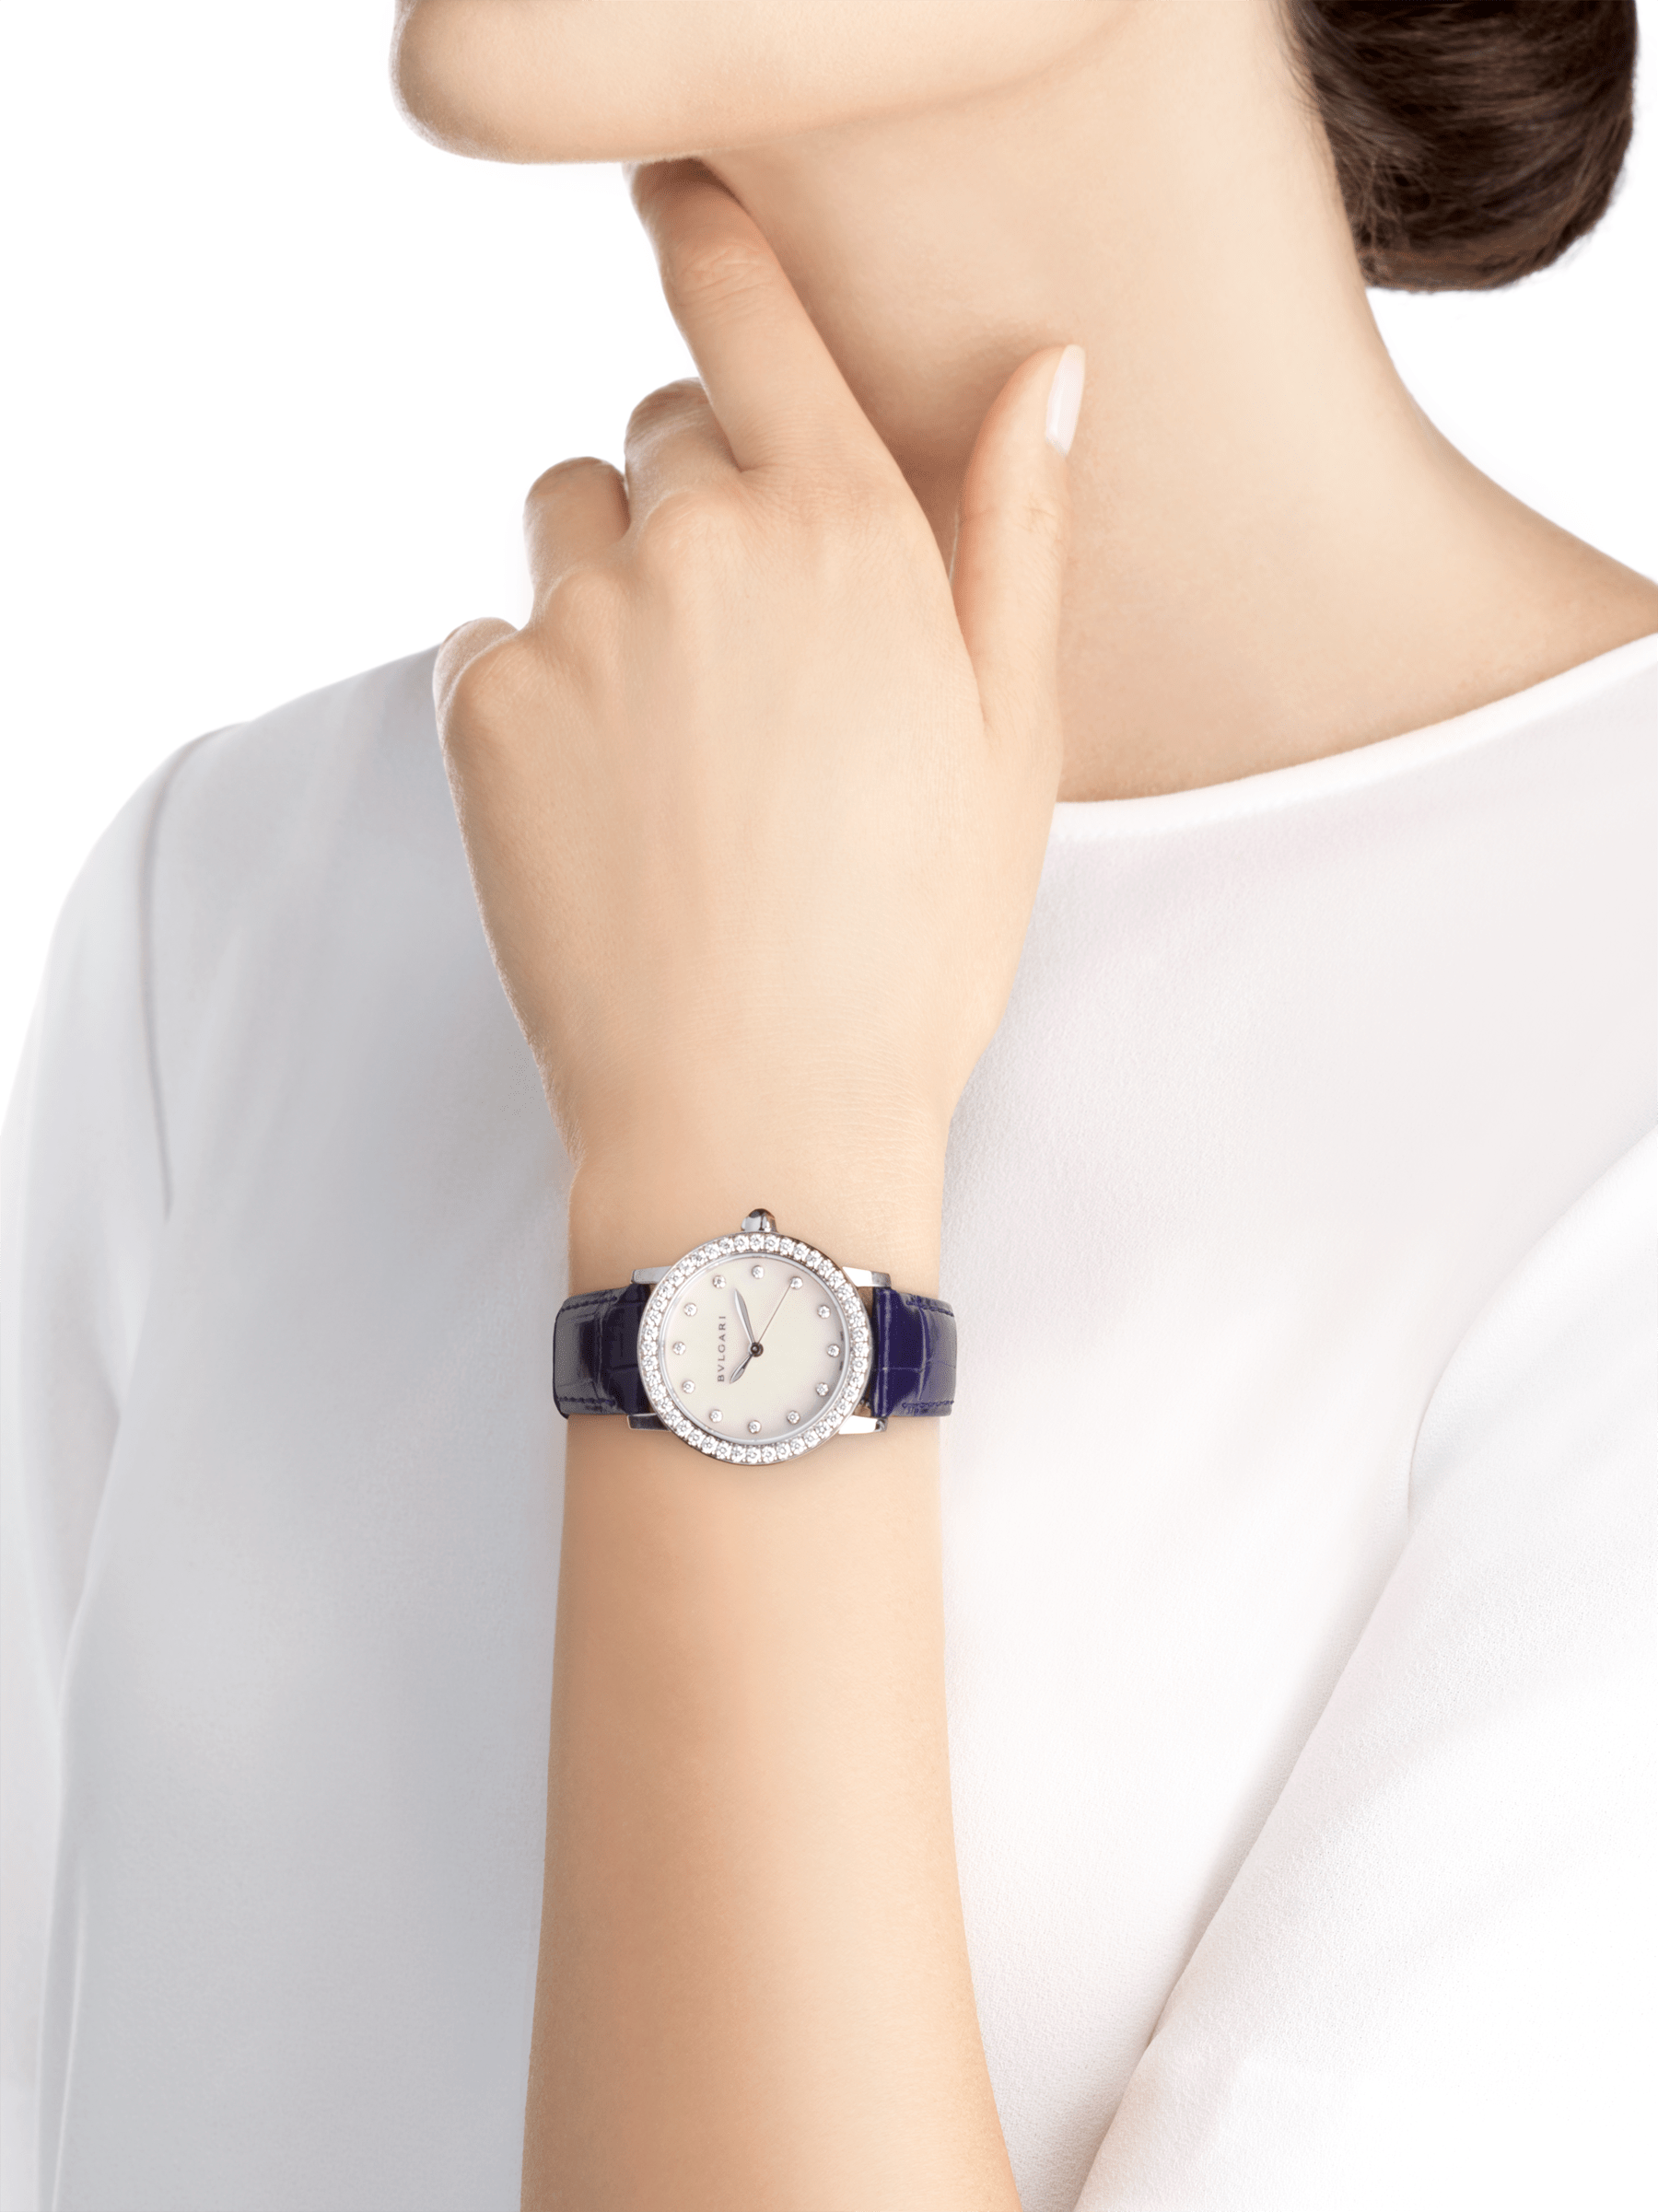 BVLGARI BVLGARI watch with stainless steel case set with brilliant-cut diamonds, mother-of-pearl dial, diamond indexes and shiny blue alligator bracelet 102721 image 4